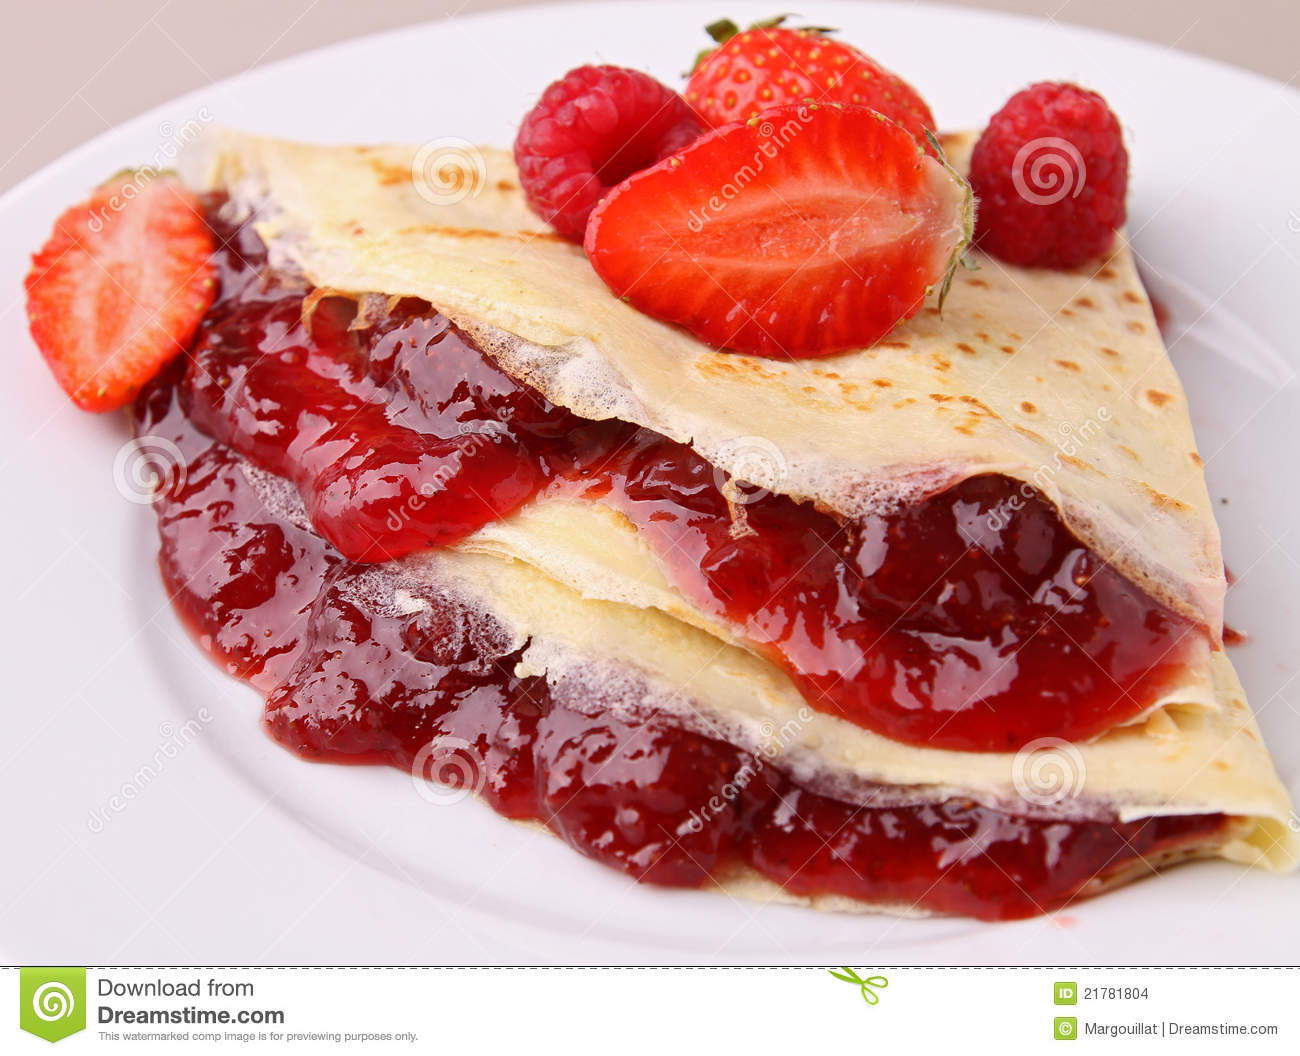 Crepe with jam